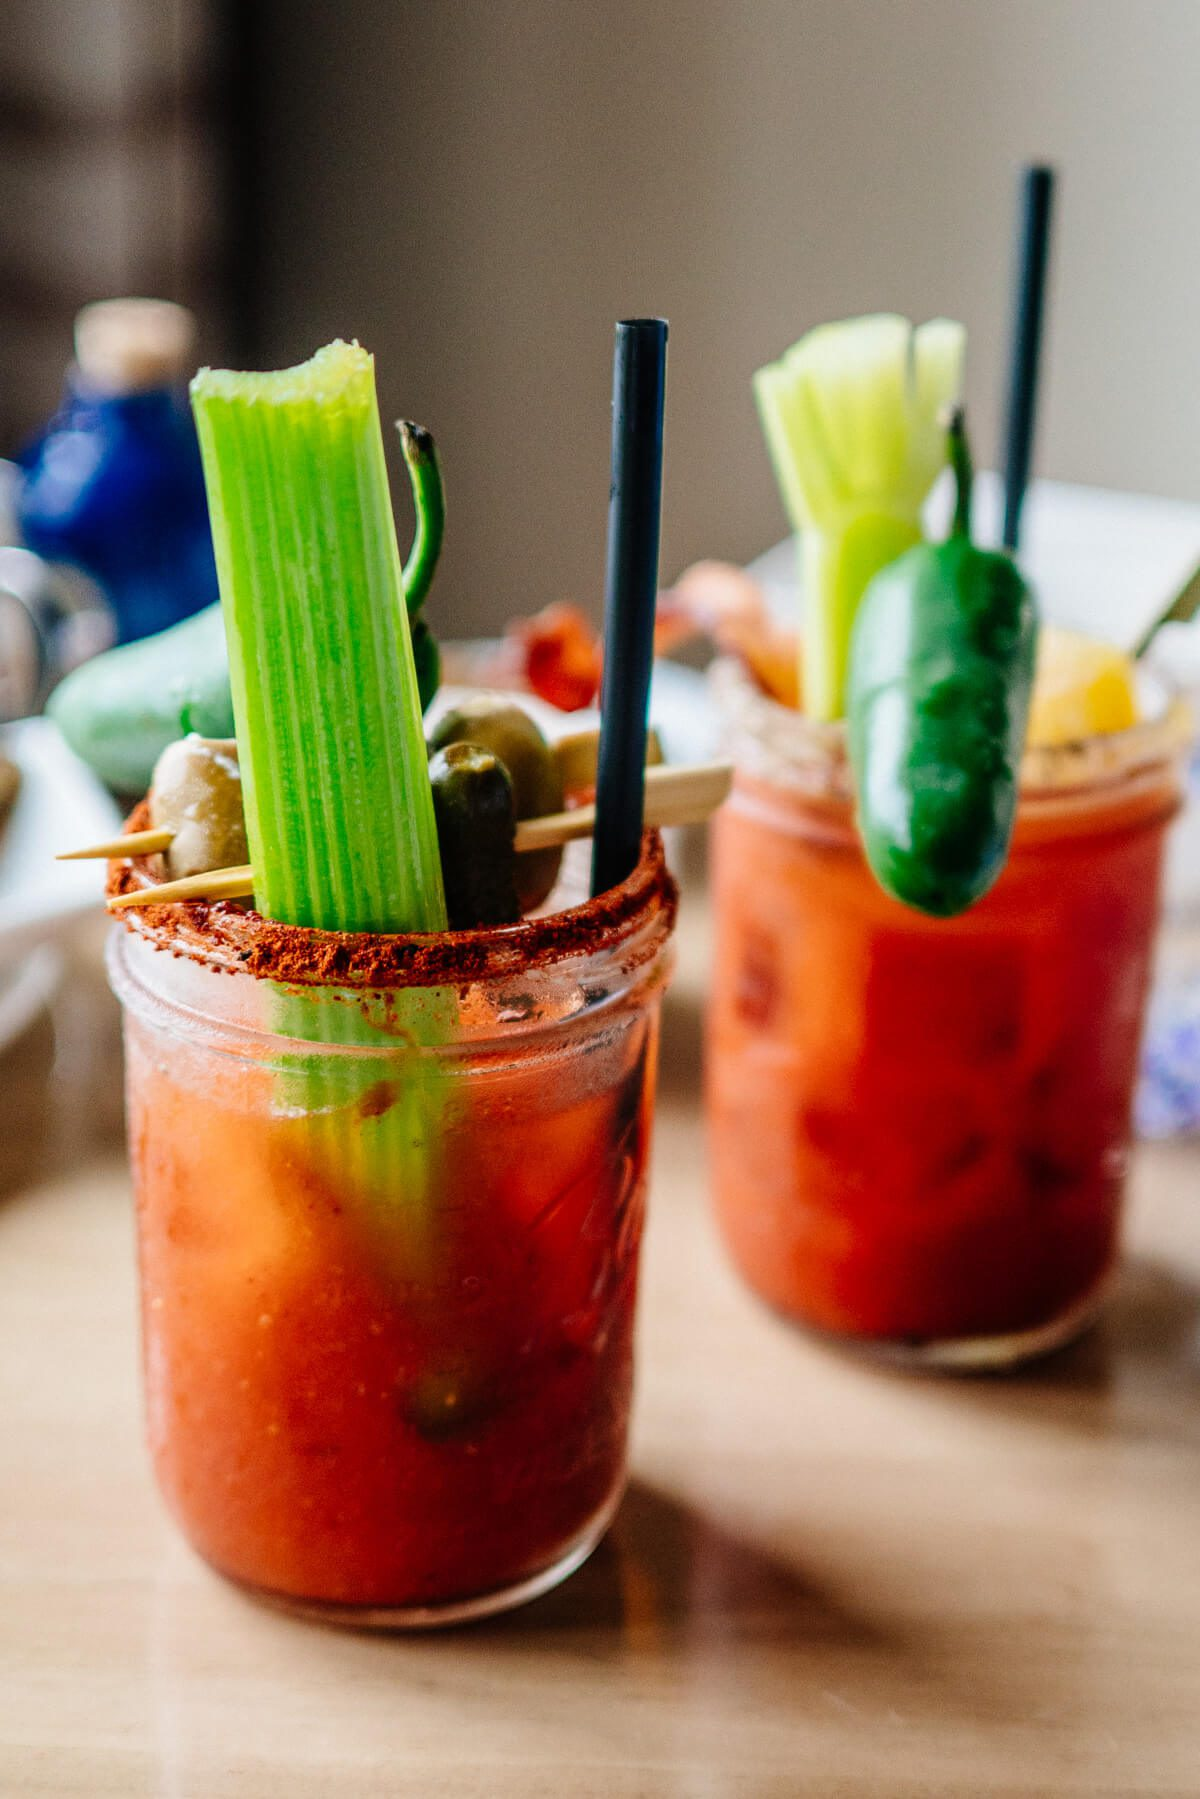 Build your own bloody mary with st george botanivore gin at Saturday Farmers Market Brunch at Navio The Ritz-Carlton Half Moon Bay